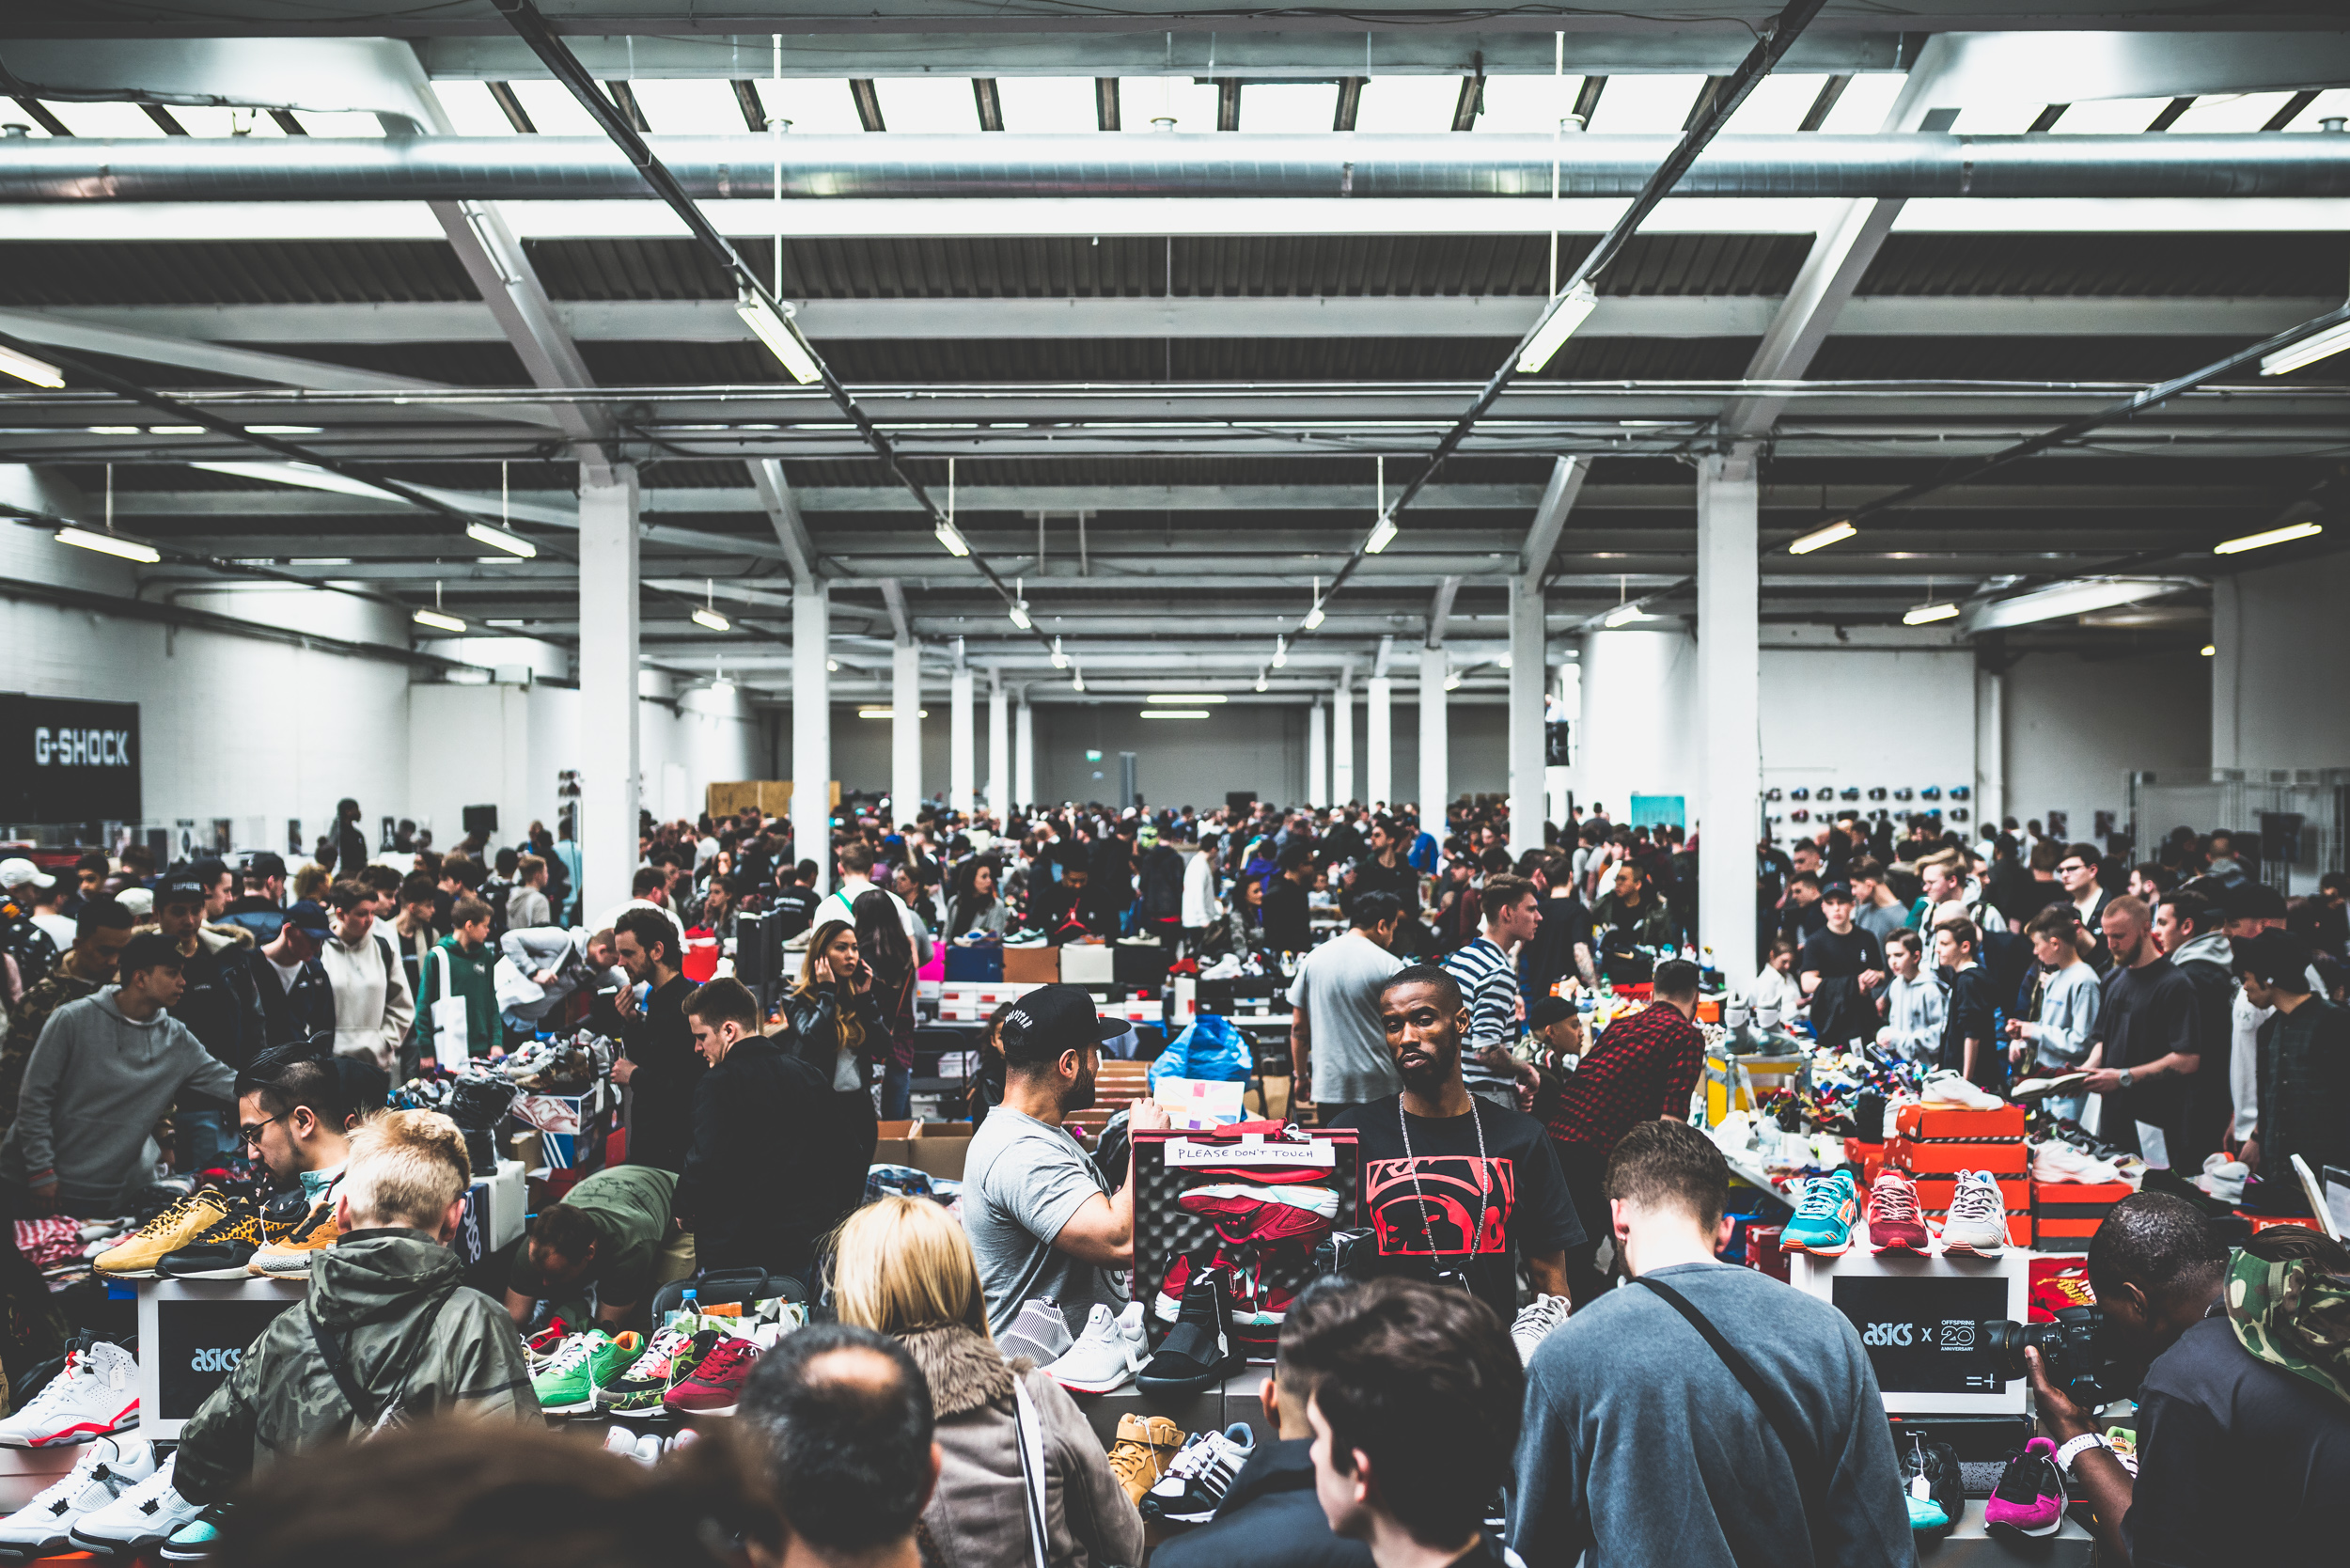 sneaker convention crowd